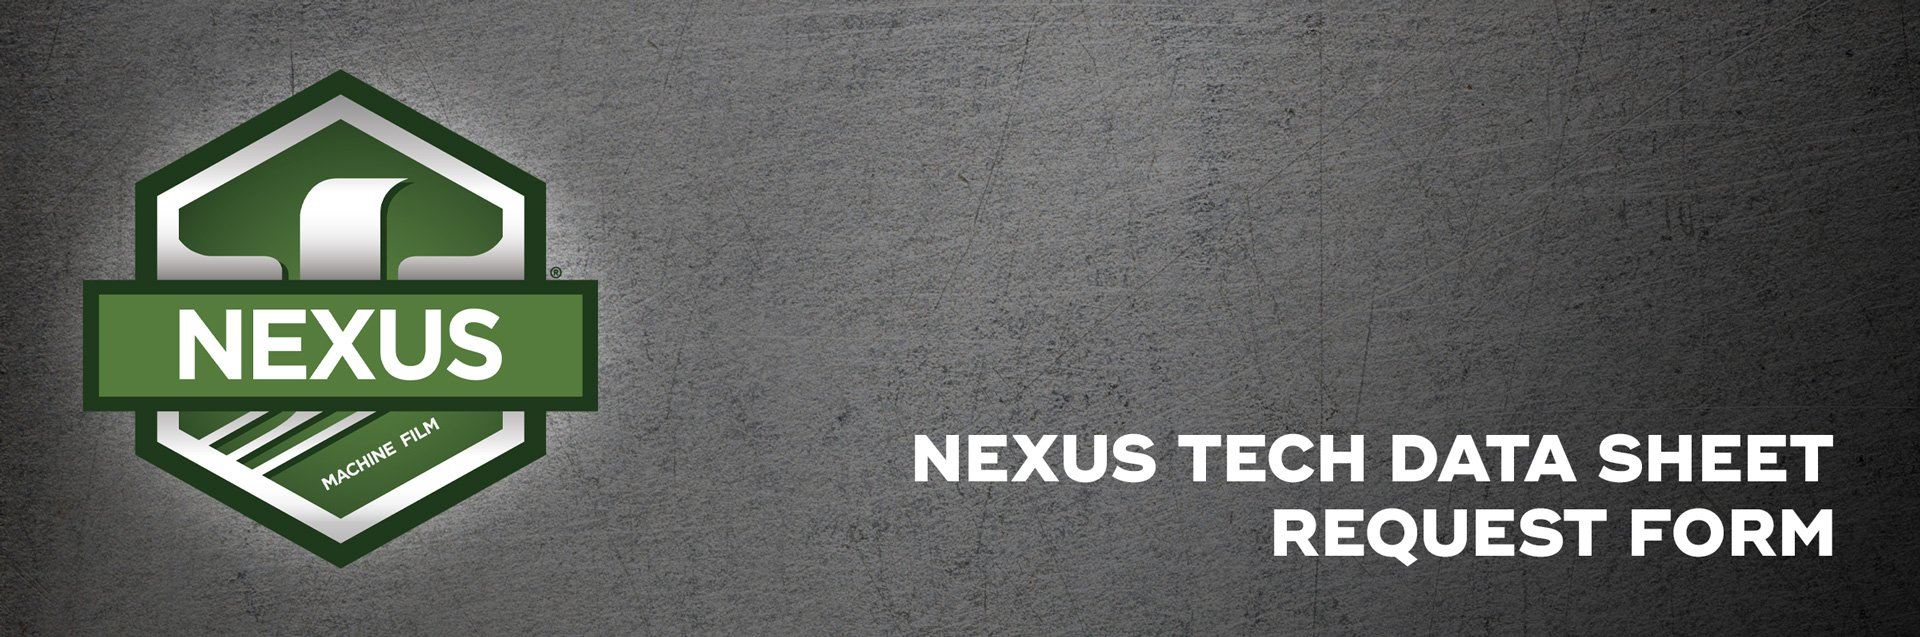 Nexus-Tech-Data-Sheet-Request-Form